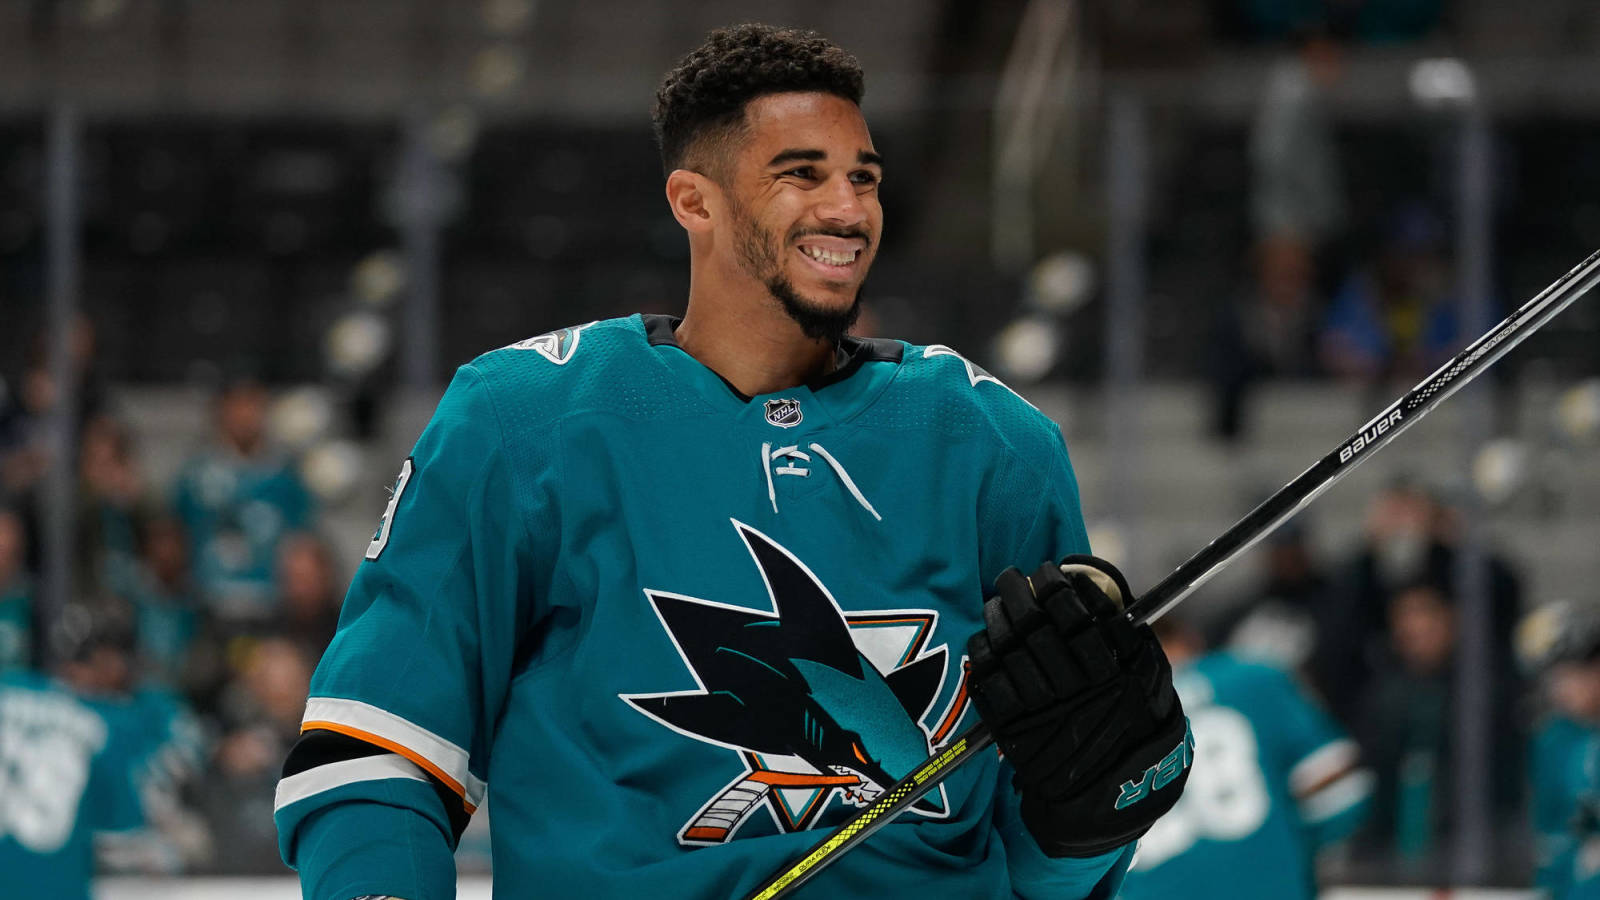 Logan Paul agrees to fight Sharks' Evander Kane | Yardbarker